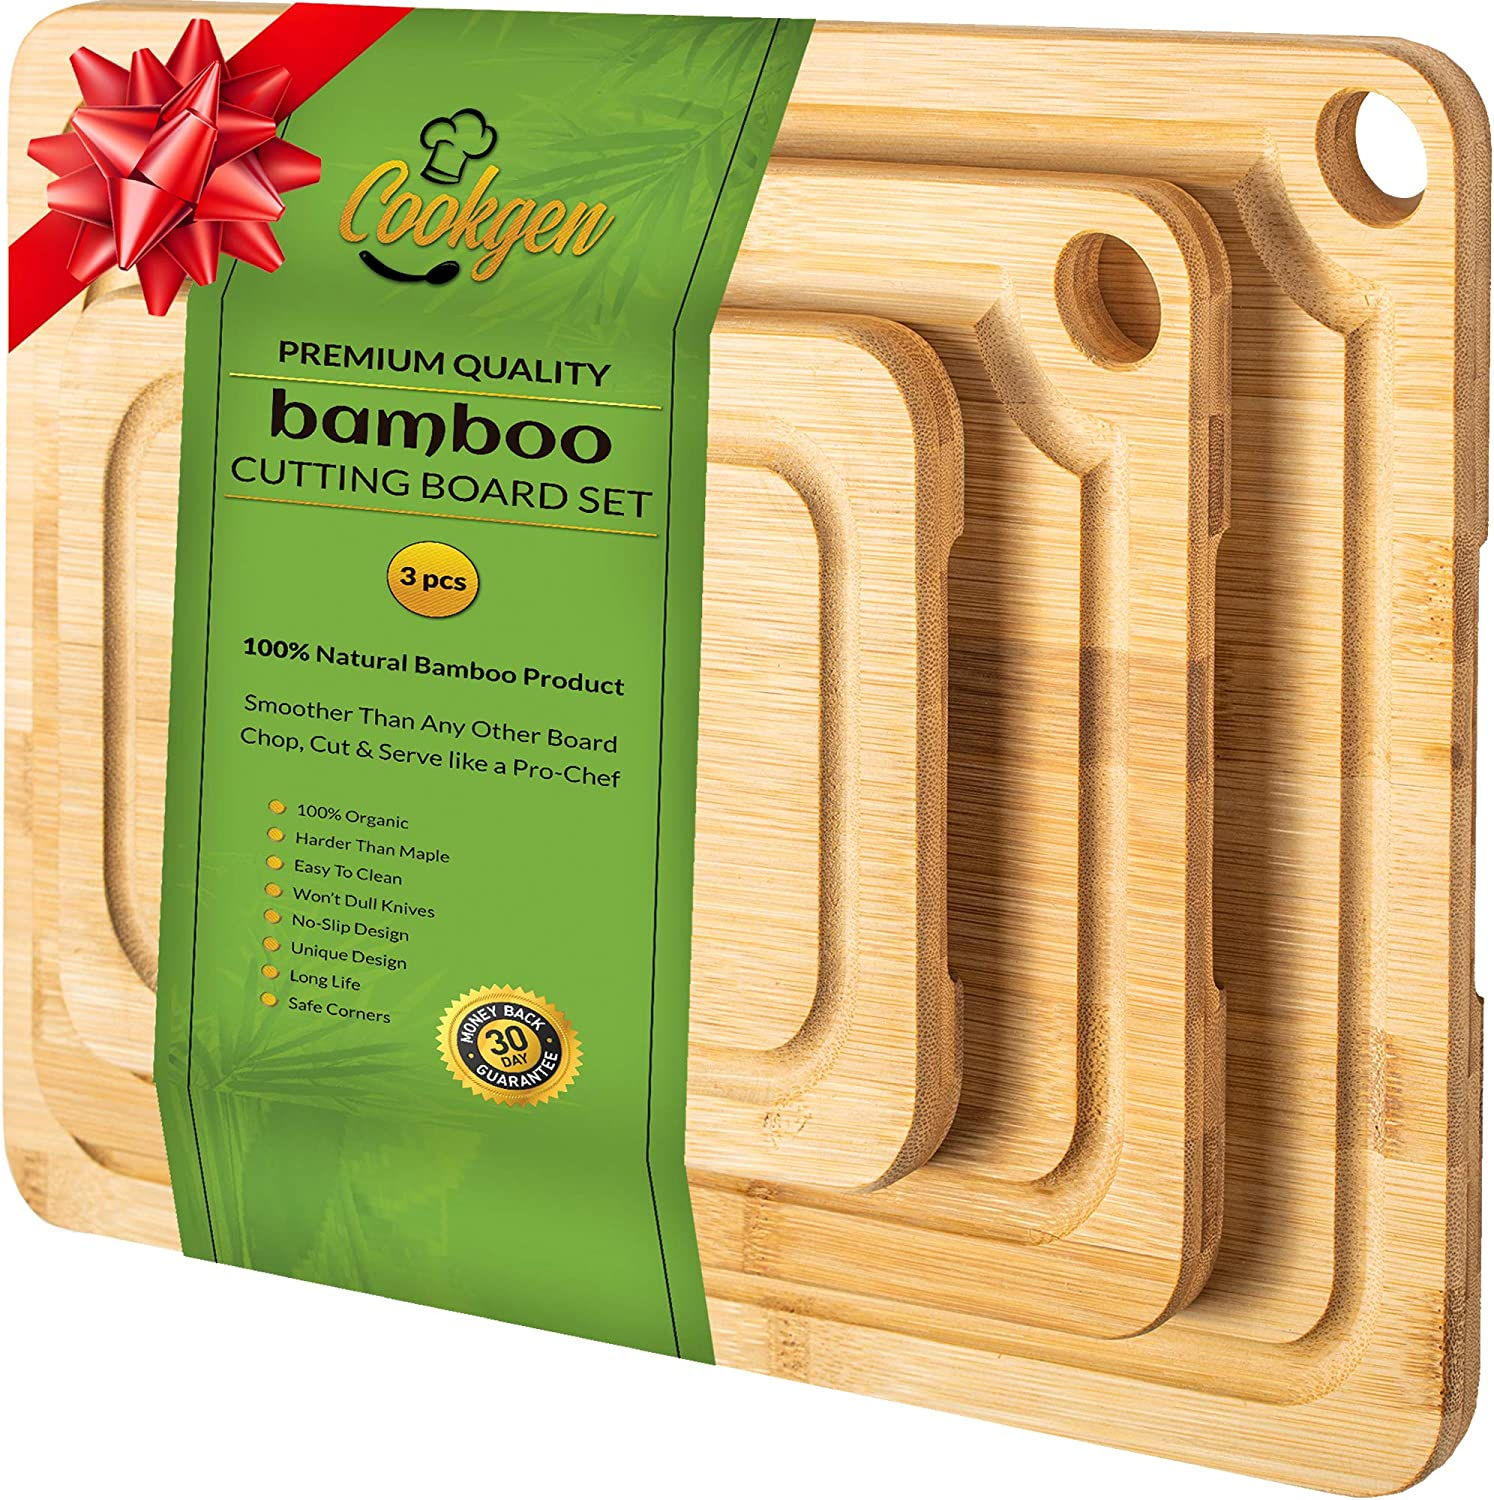 Cookgen Bamboo Cutting Board Set of 3 With Juice Groove, Pre Oiled, Large Handles